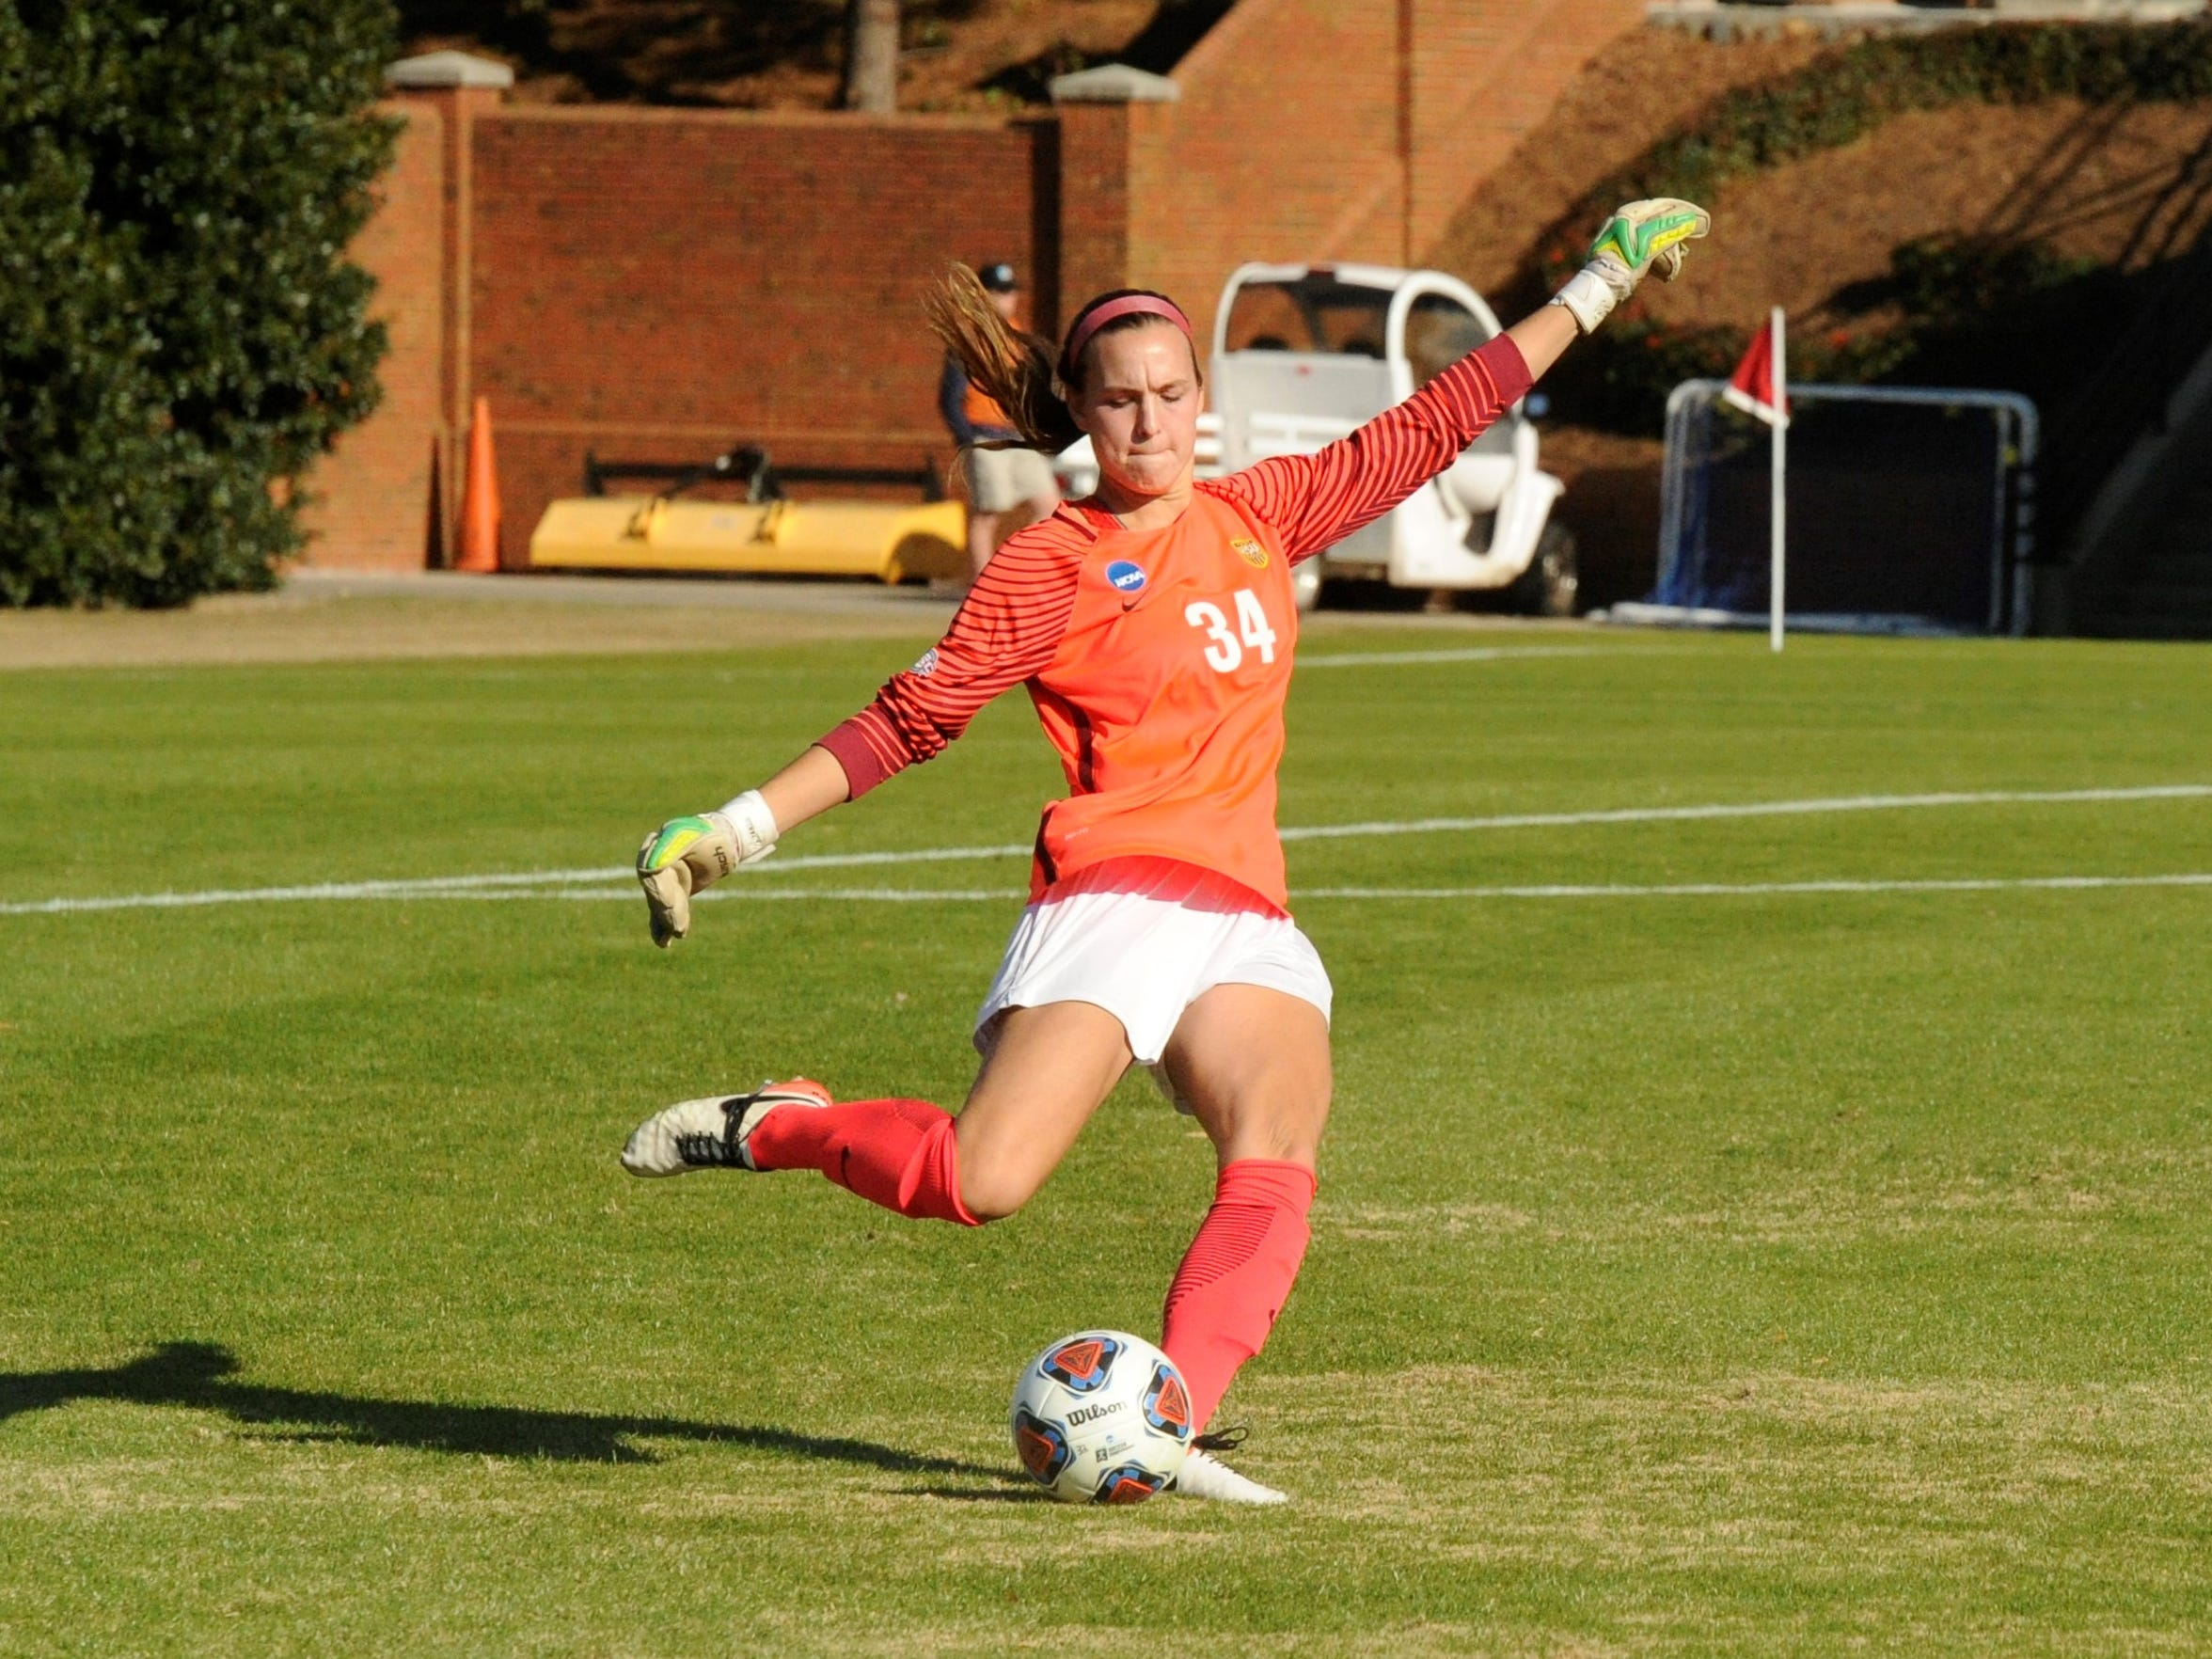 Hardin-Simmons keeper Caitlin Christiansen takes a free kick during the 2017 NCAA Division III Final Four game against Williams. It was the second trip to the Final Four for Wood and the Cowgirls.